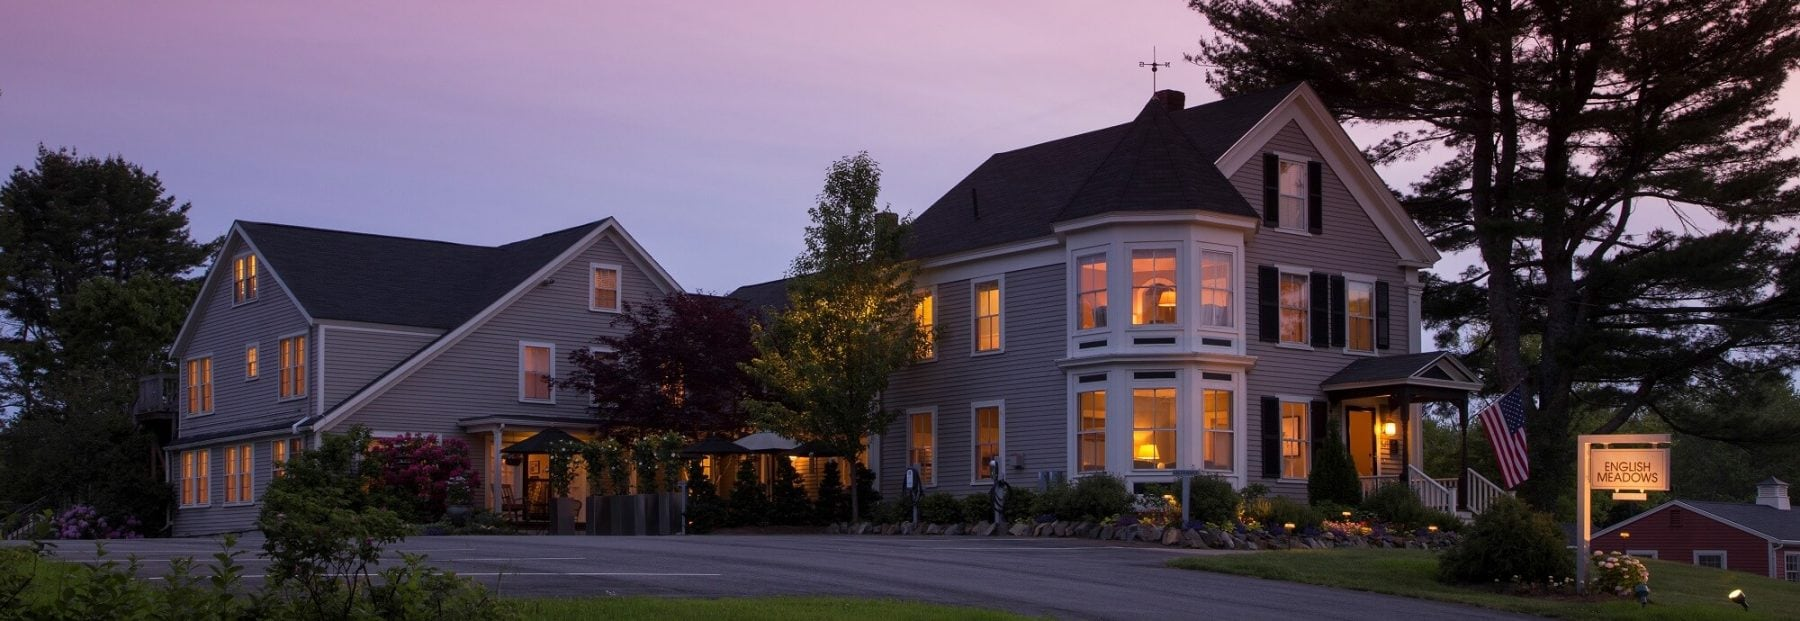 Inn in dusk with a purple sunset